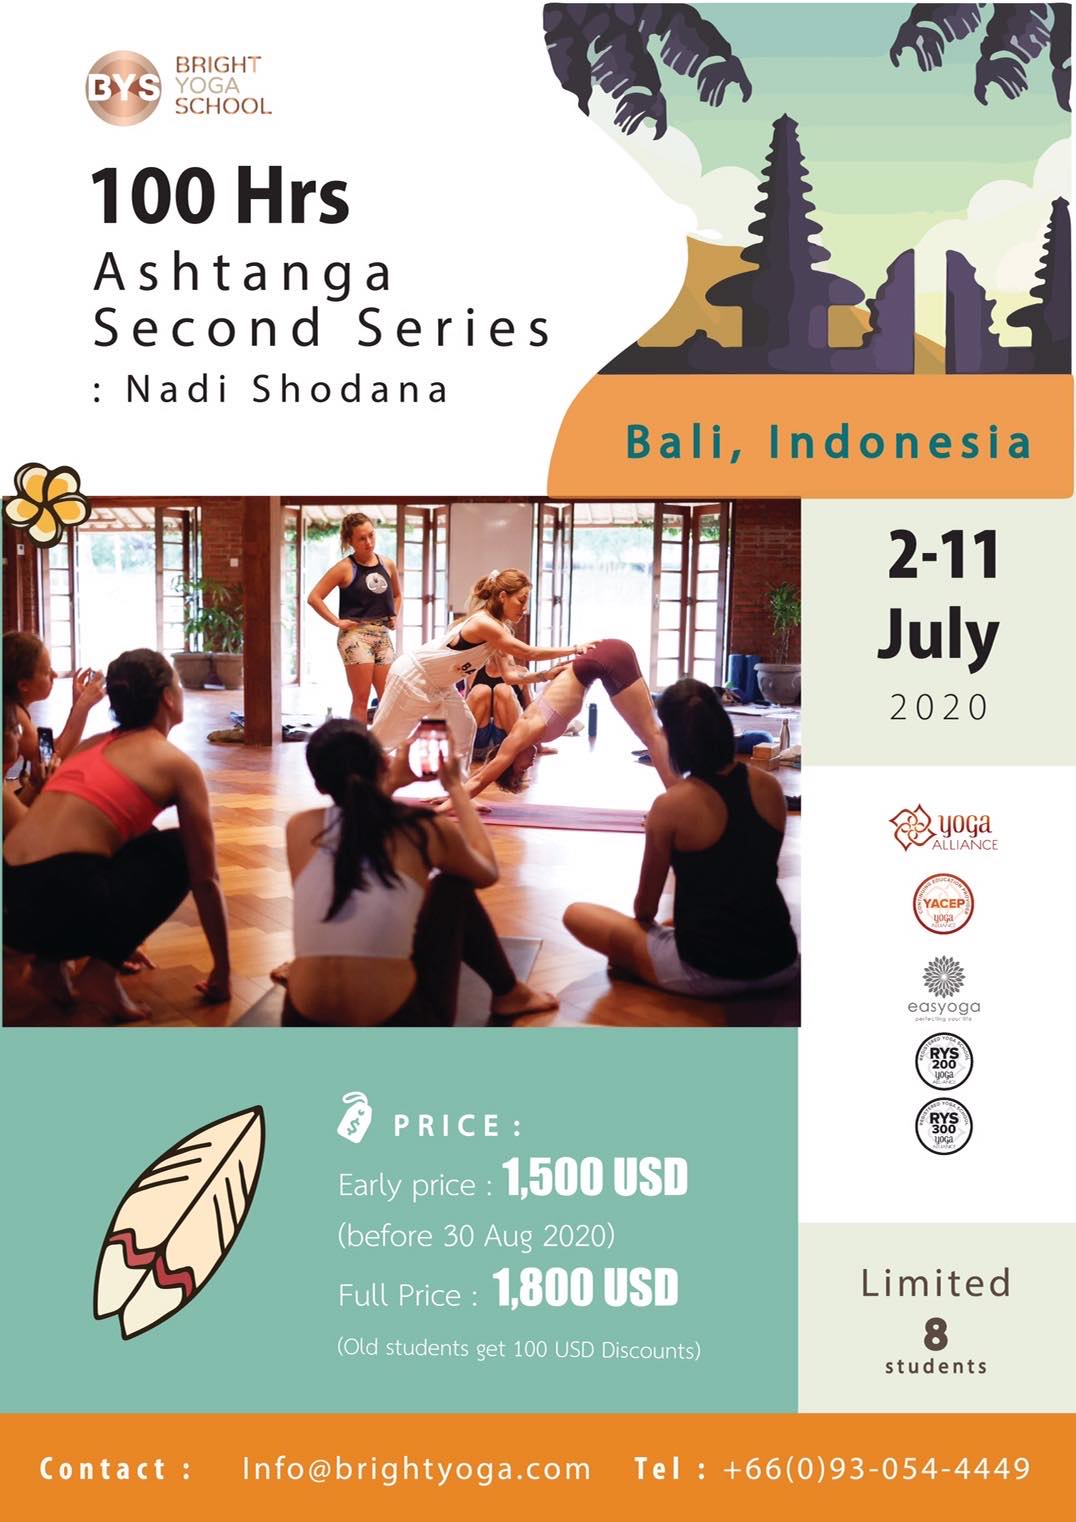 100 Hrs Ashtanga Second Series : Nadi Shodana in Bali